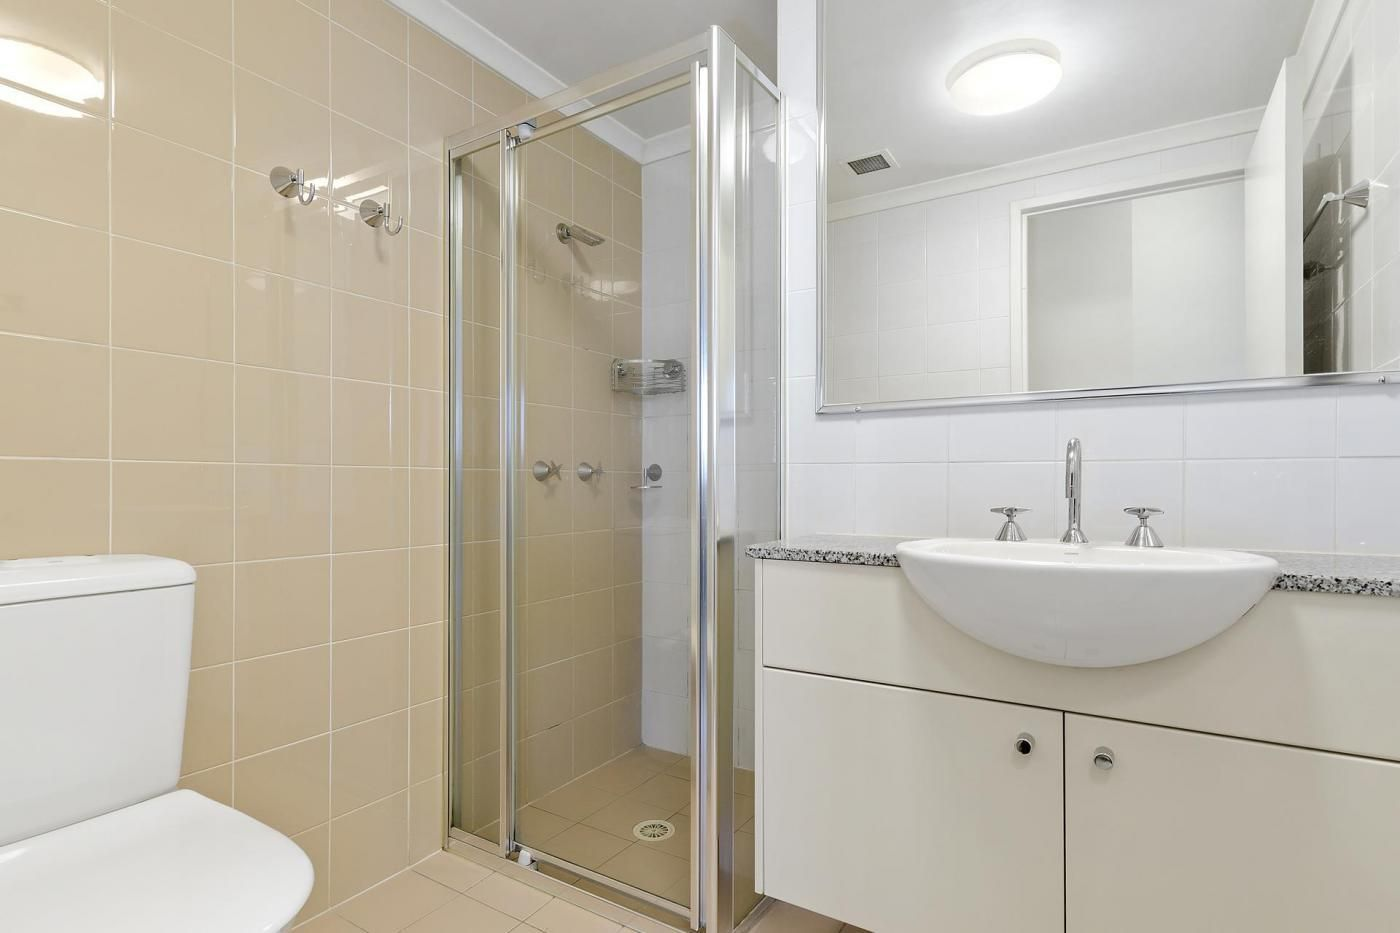 151/214-220 Princes Highway, Fairy Meadow NSW 2519, Image 2